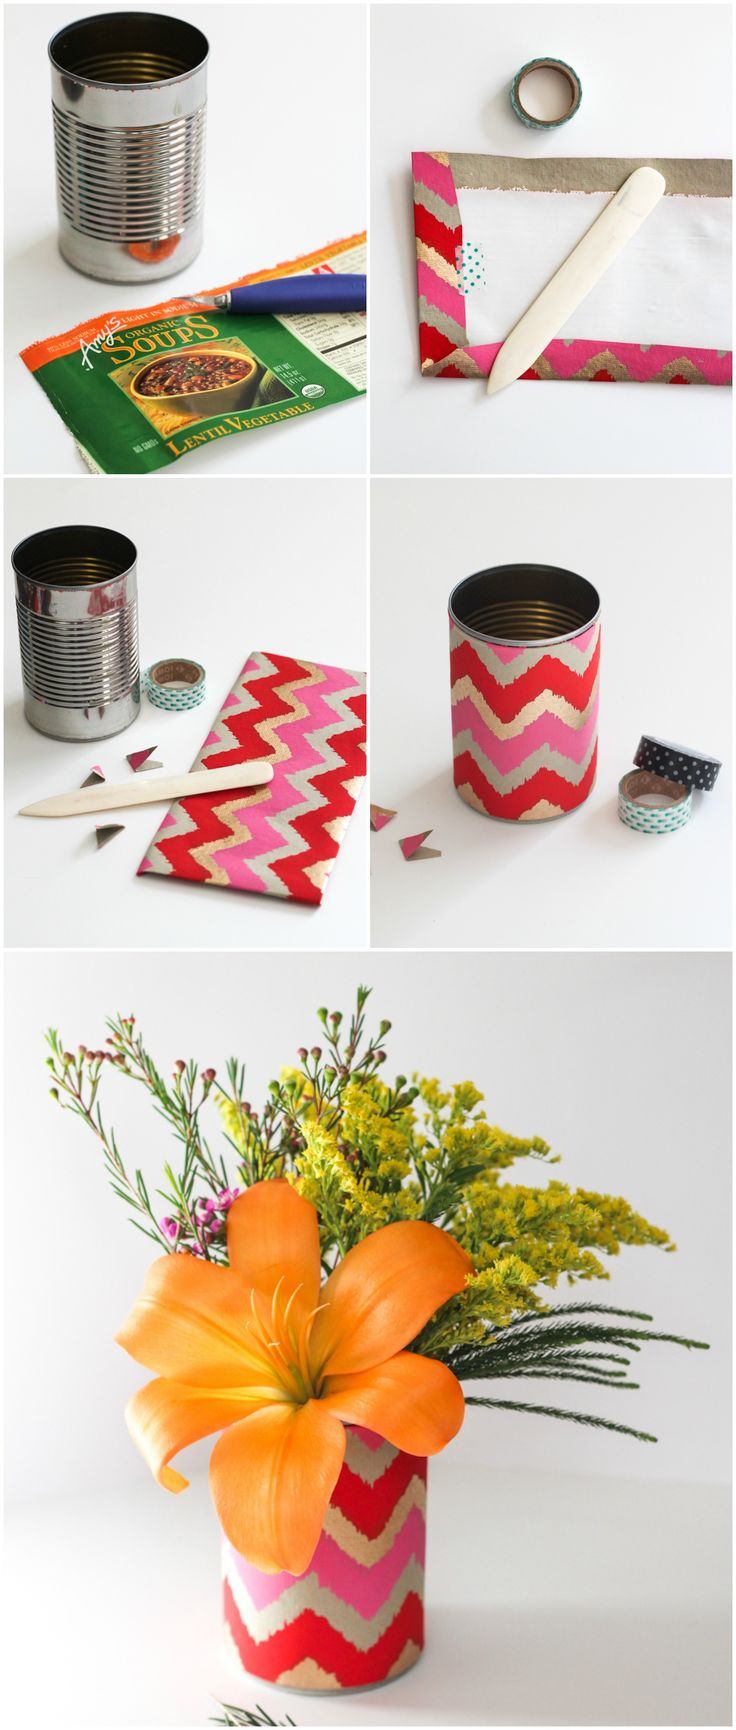 DIY Soup Can Vases | The Crafted Life